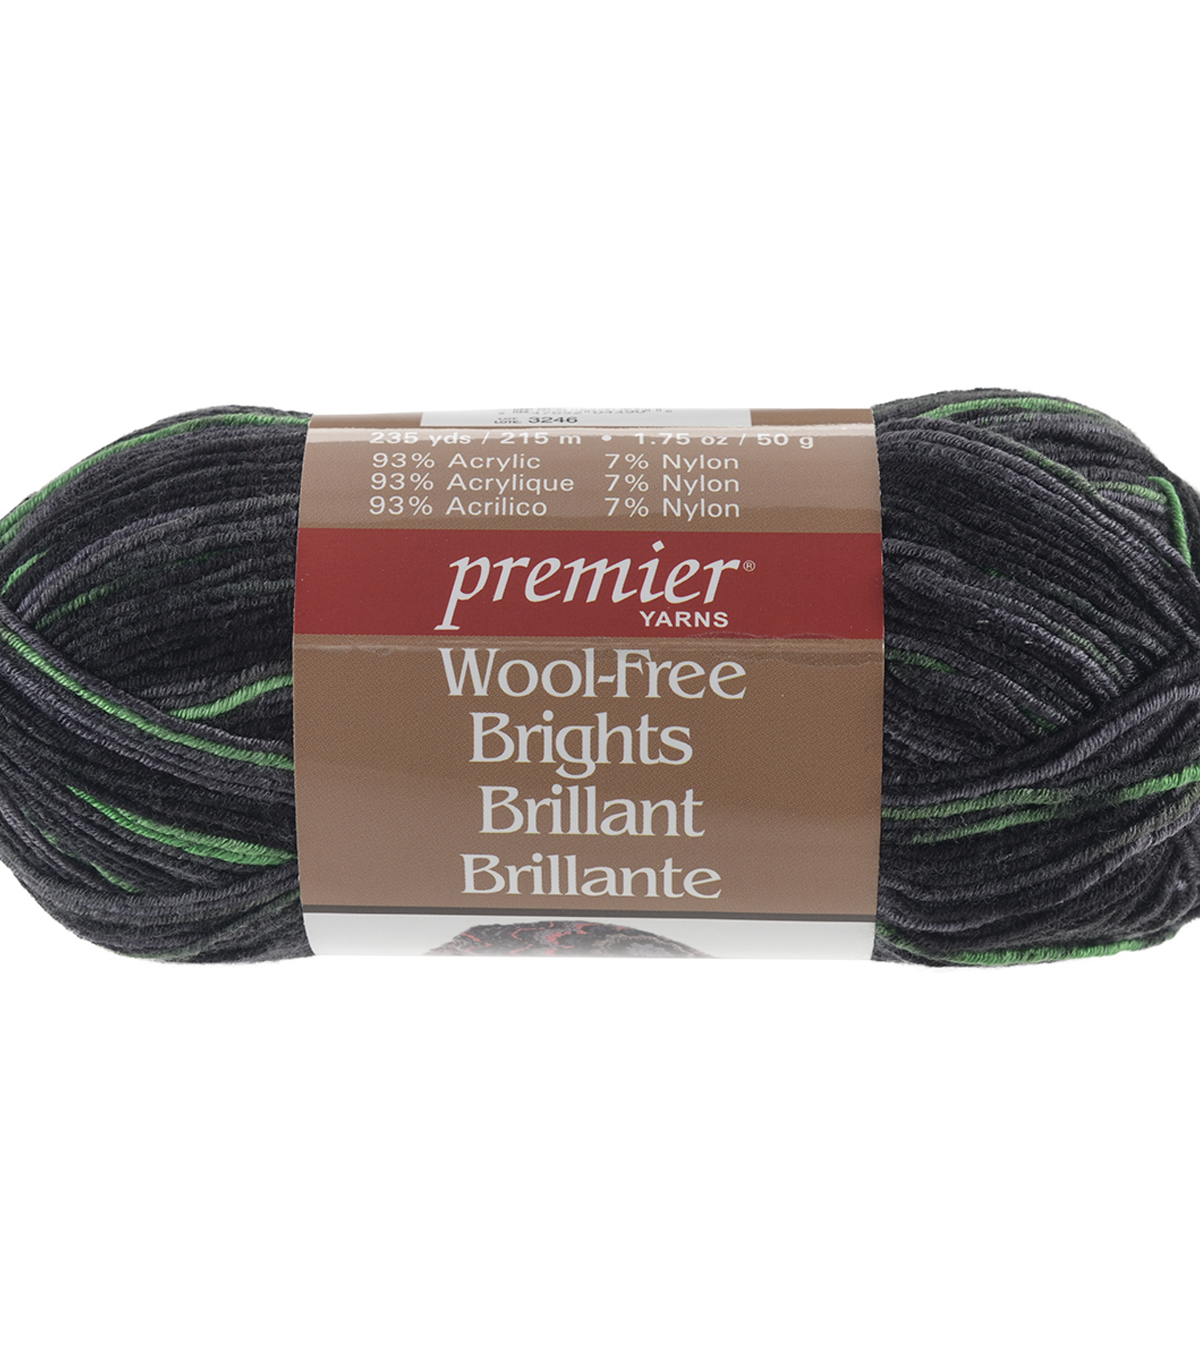 Premier Yarns Wool Free Brights Yarn